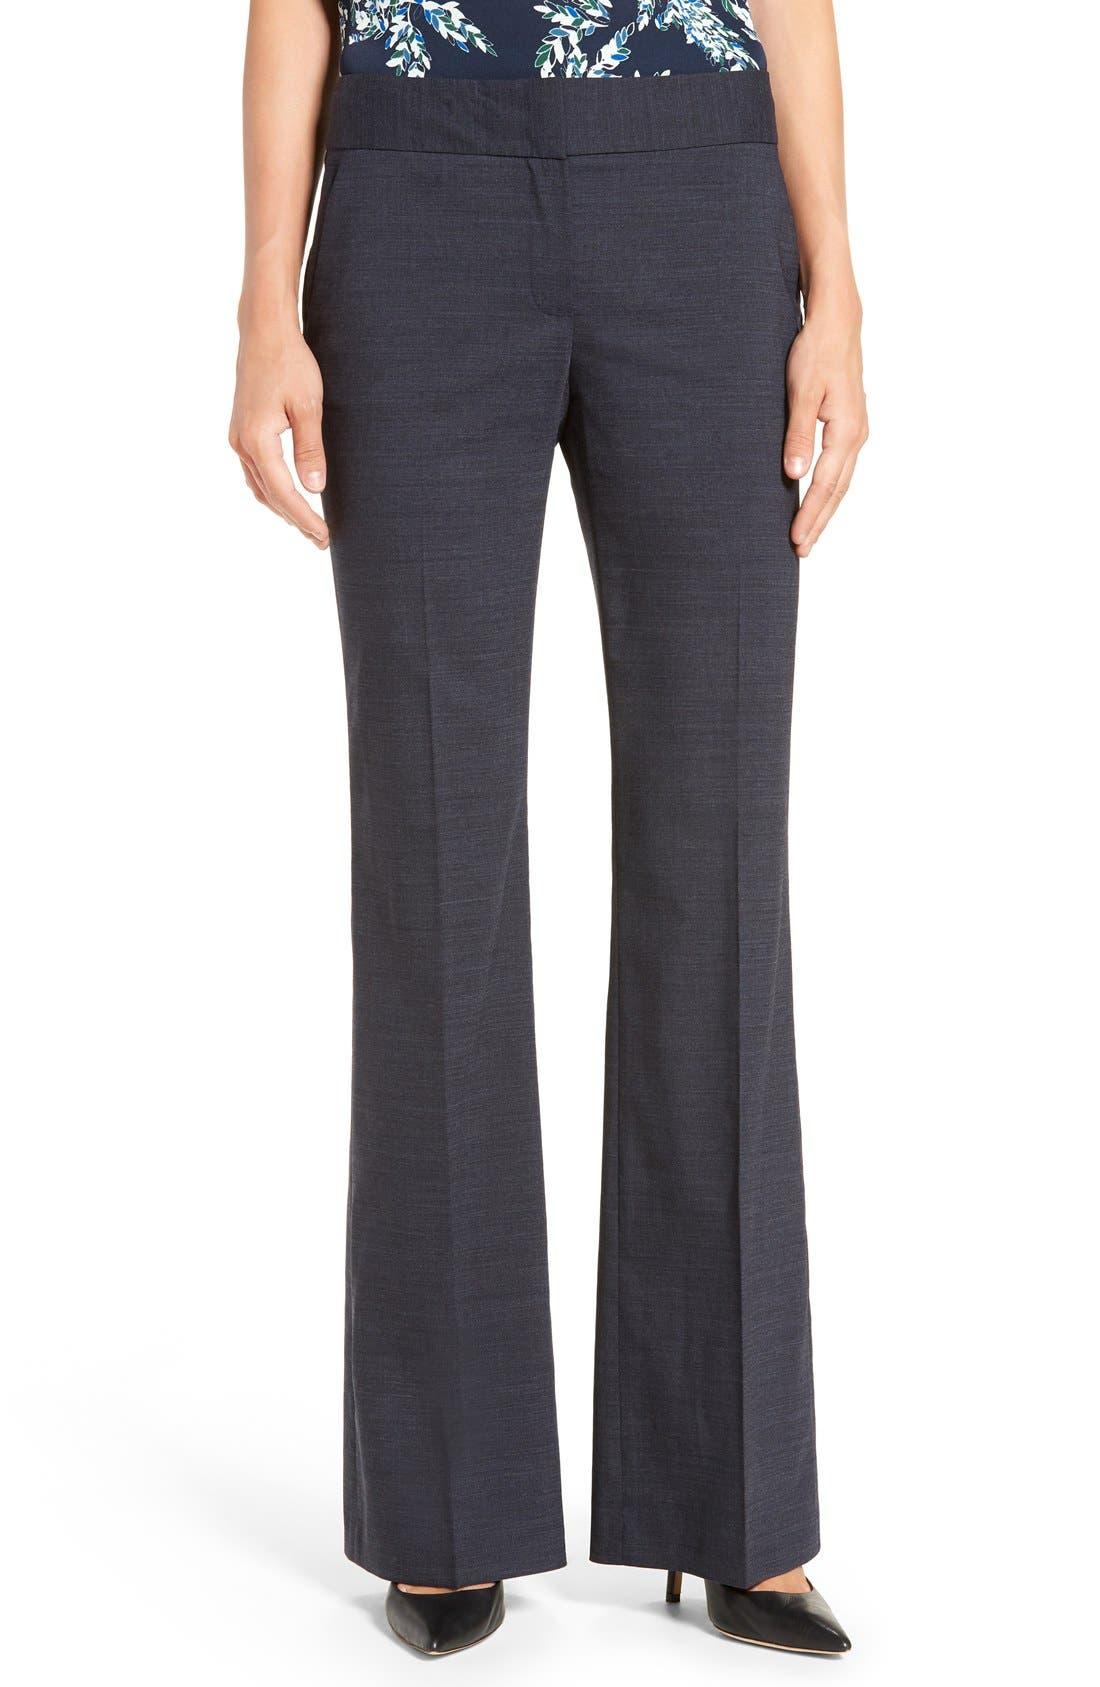 Alternate Image 1 Selected - Classiques Entier® 'Sienna' Flare Leg Stretch Wool Suit Pants (Regular & Petite)